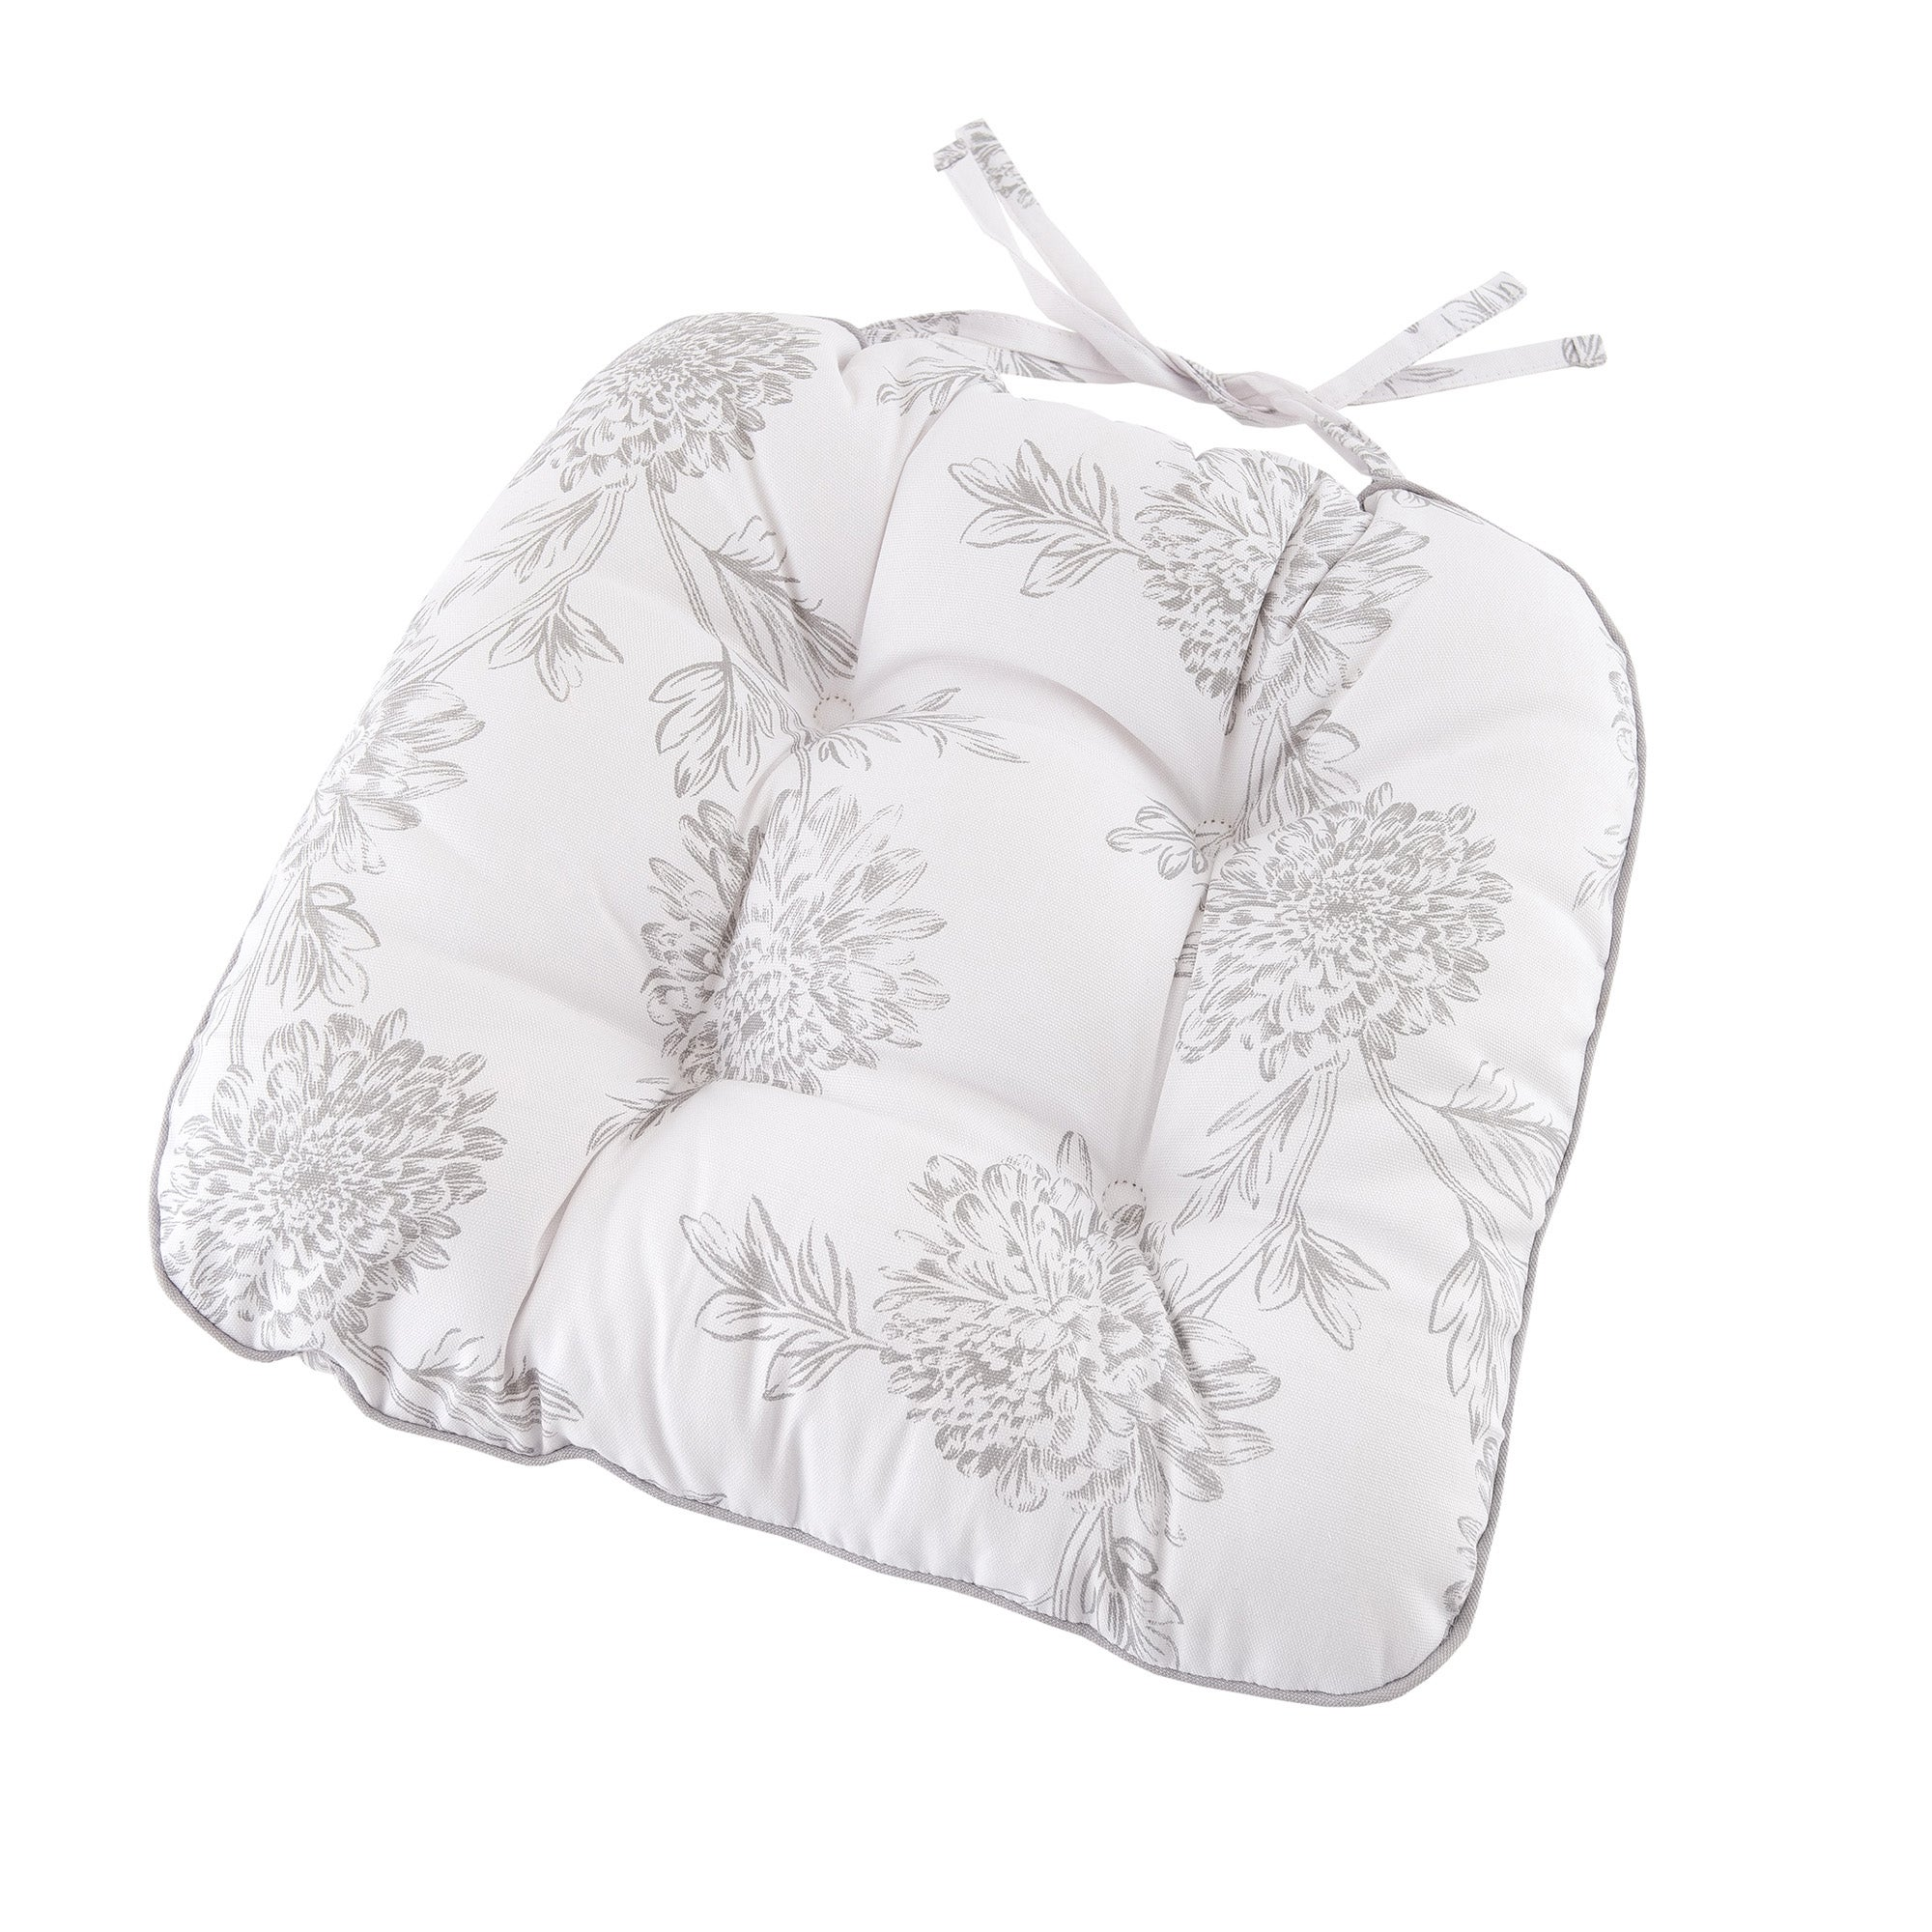 Etched Floral Collection Seat Pad